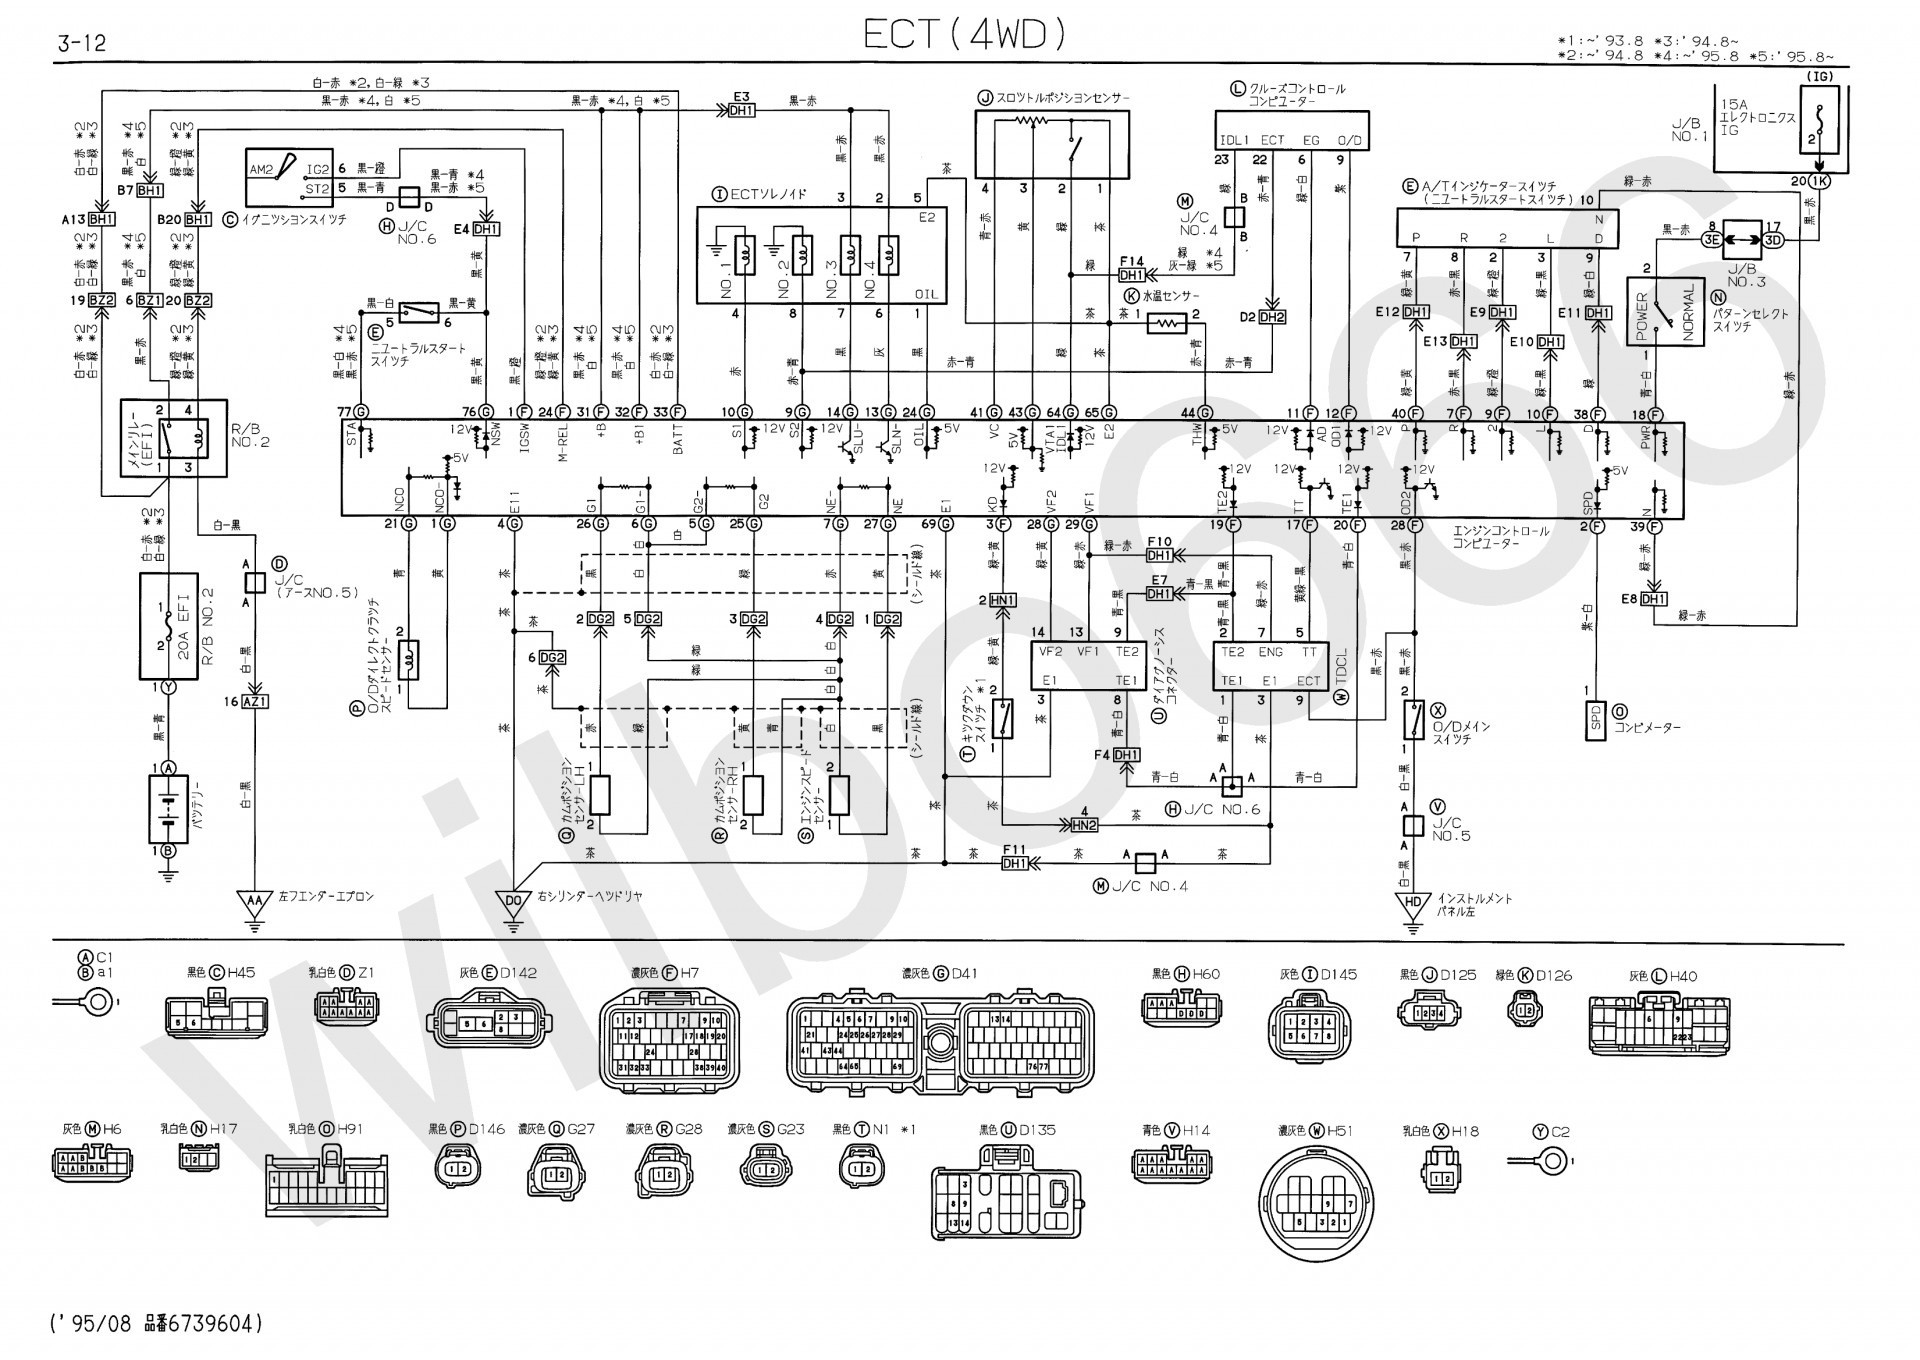 1993 Bmw Wiring Diagram House Wiring Diagram Symbols \u2022 2005 BMW 325I  Radio Wiring Diagram Stereo Wiring Diagram For 1993 Bmw 318i